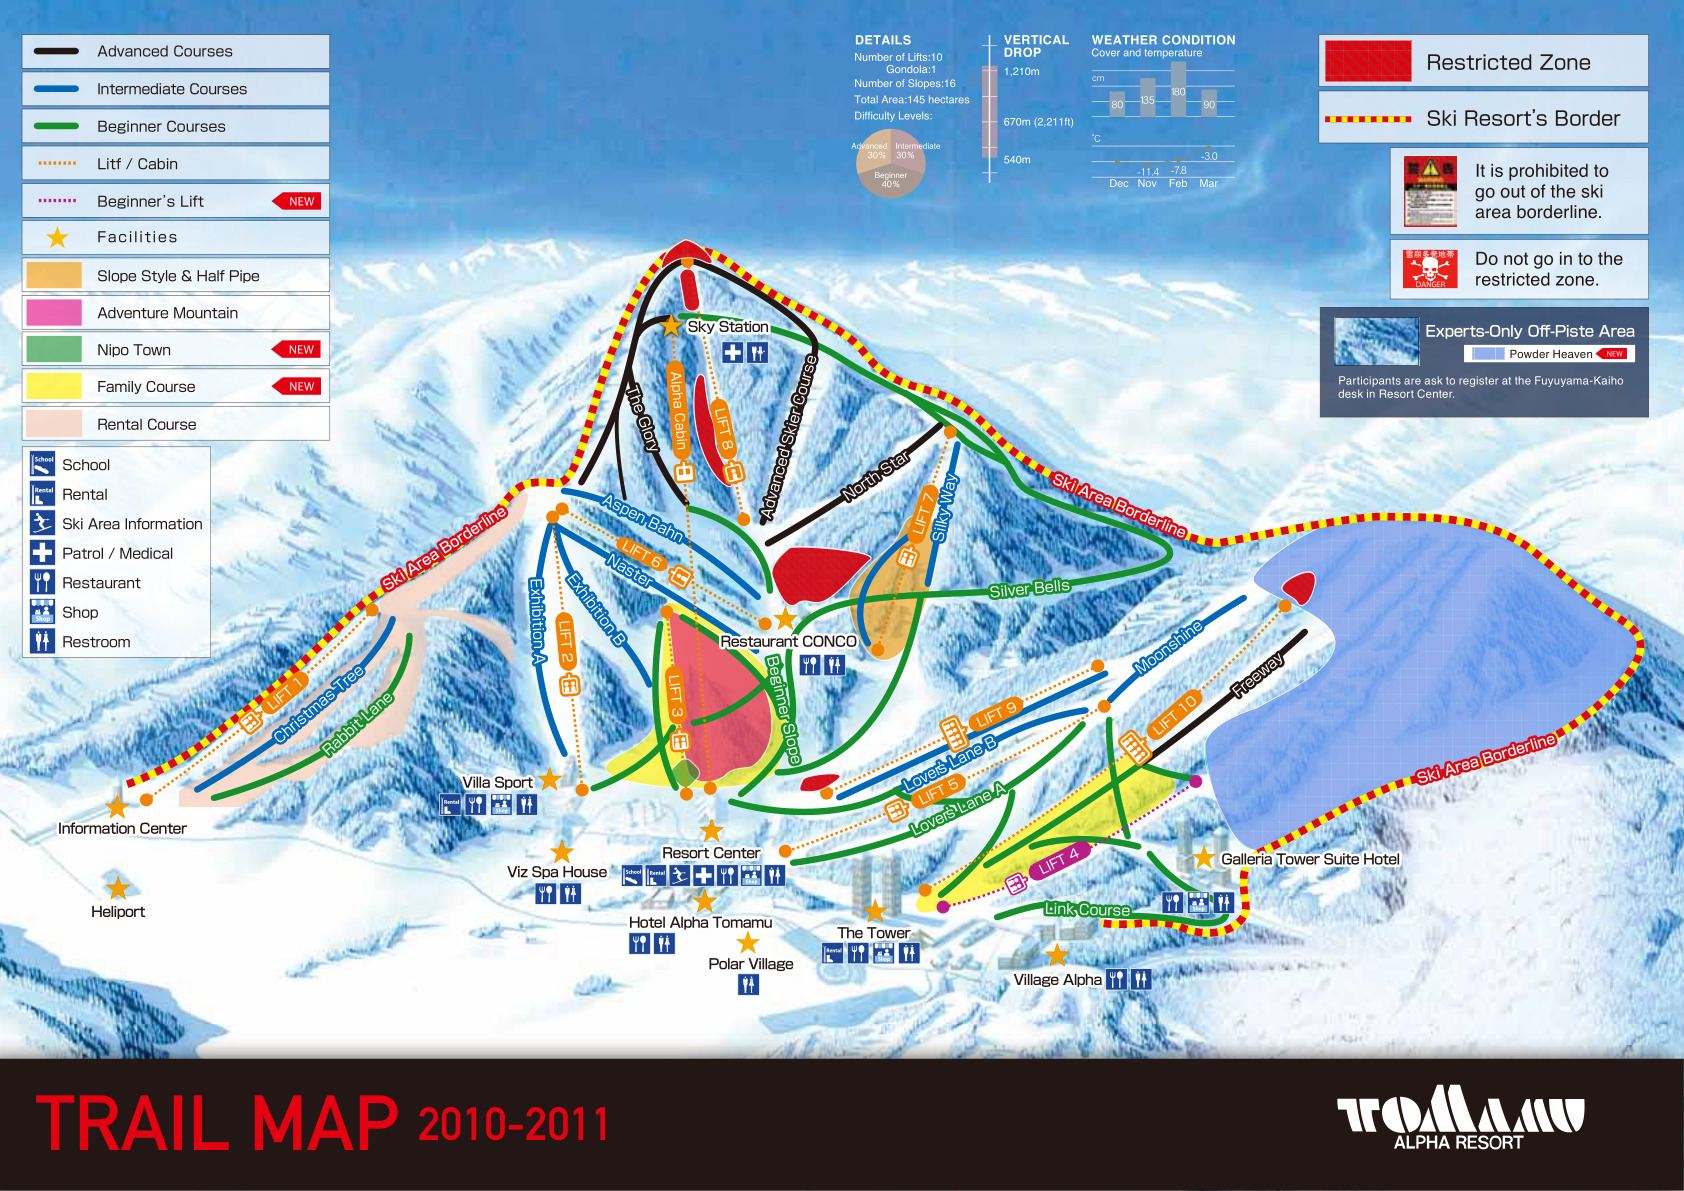 google maps map api with 1233 on 315 moreover Downhill as well Travel Bormio Map in addition 163 furthermore 366.